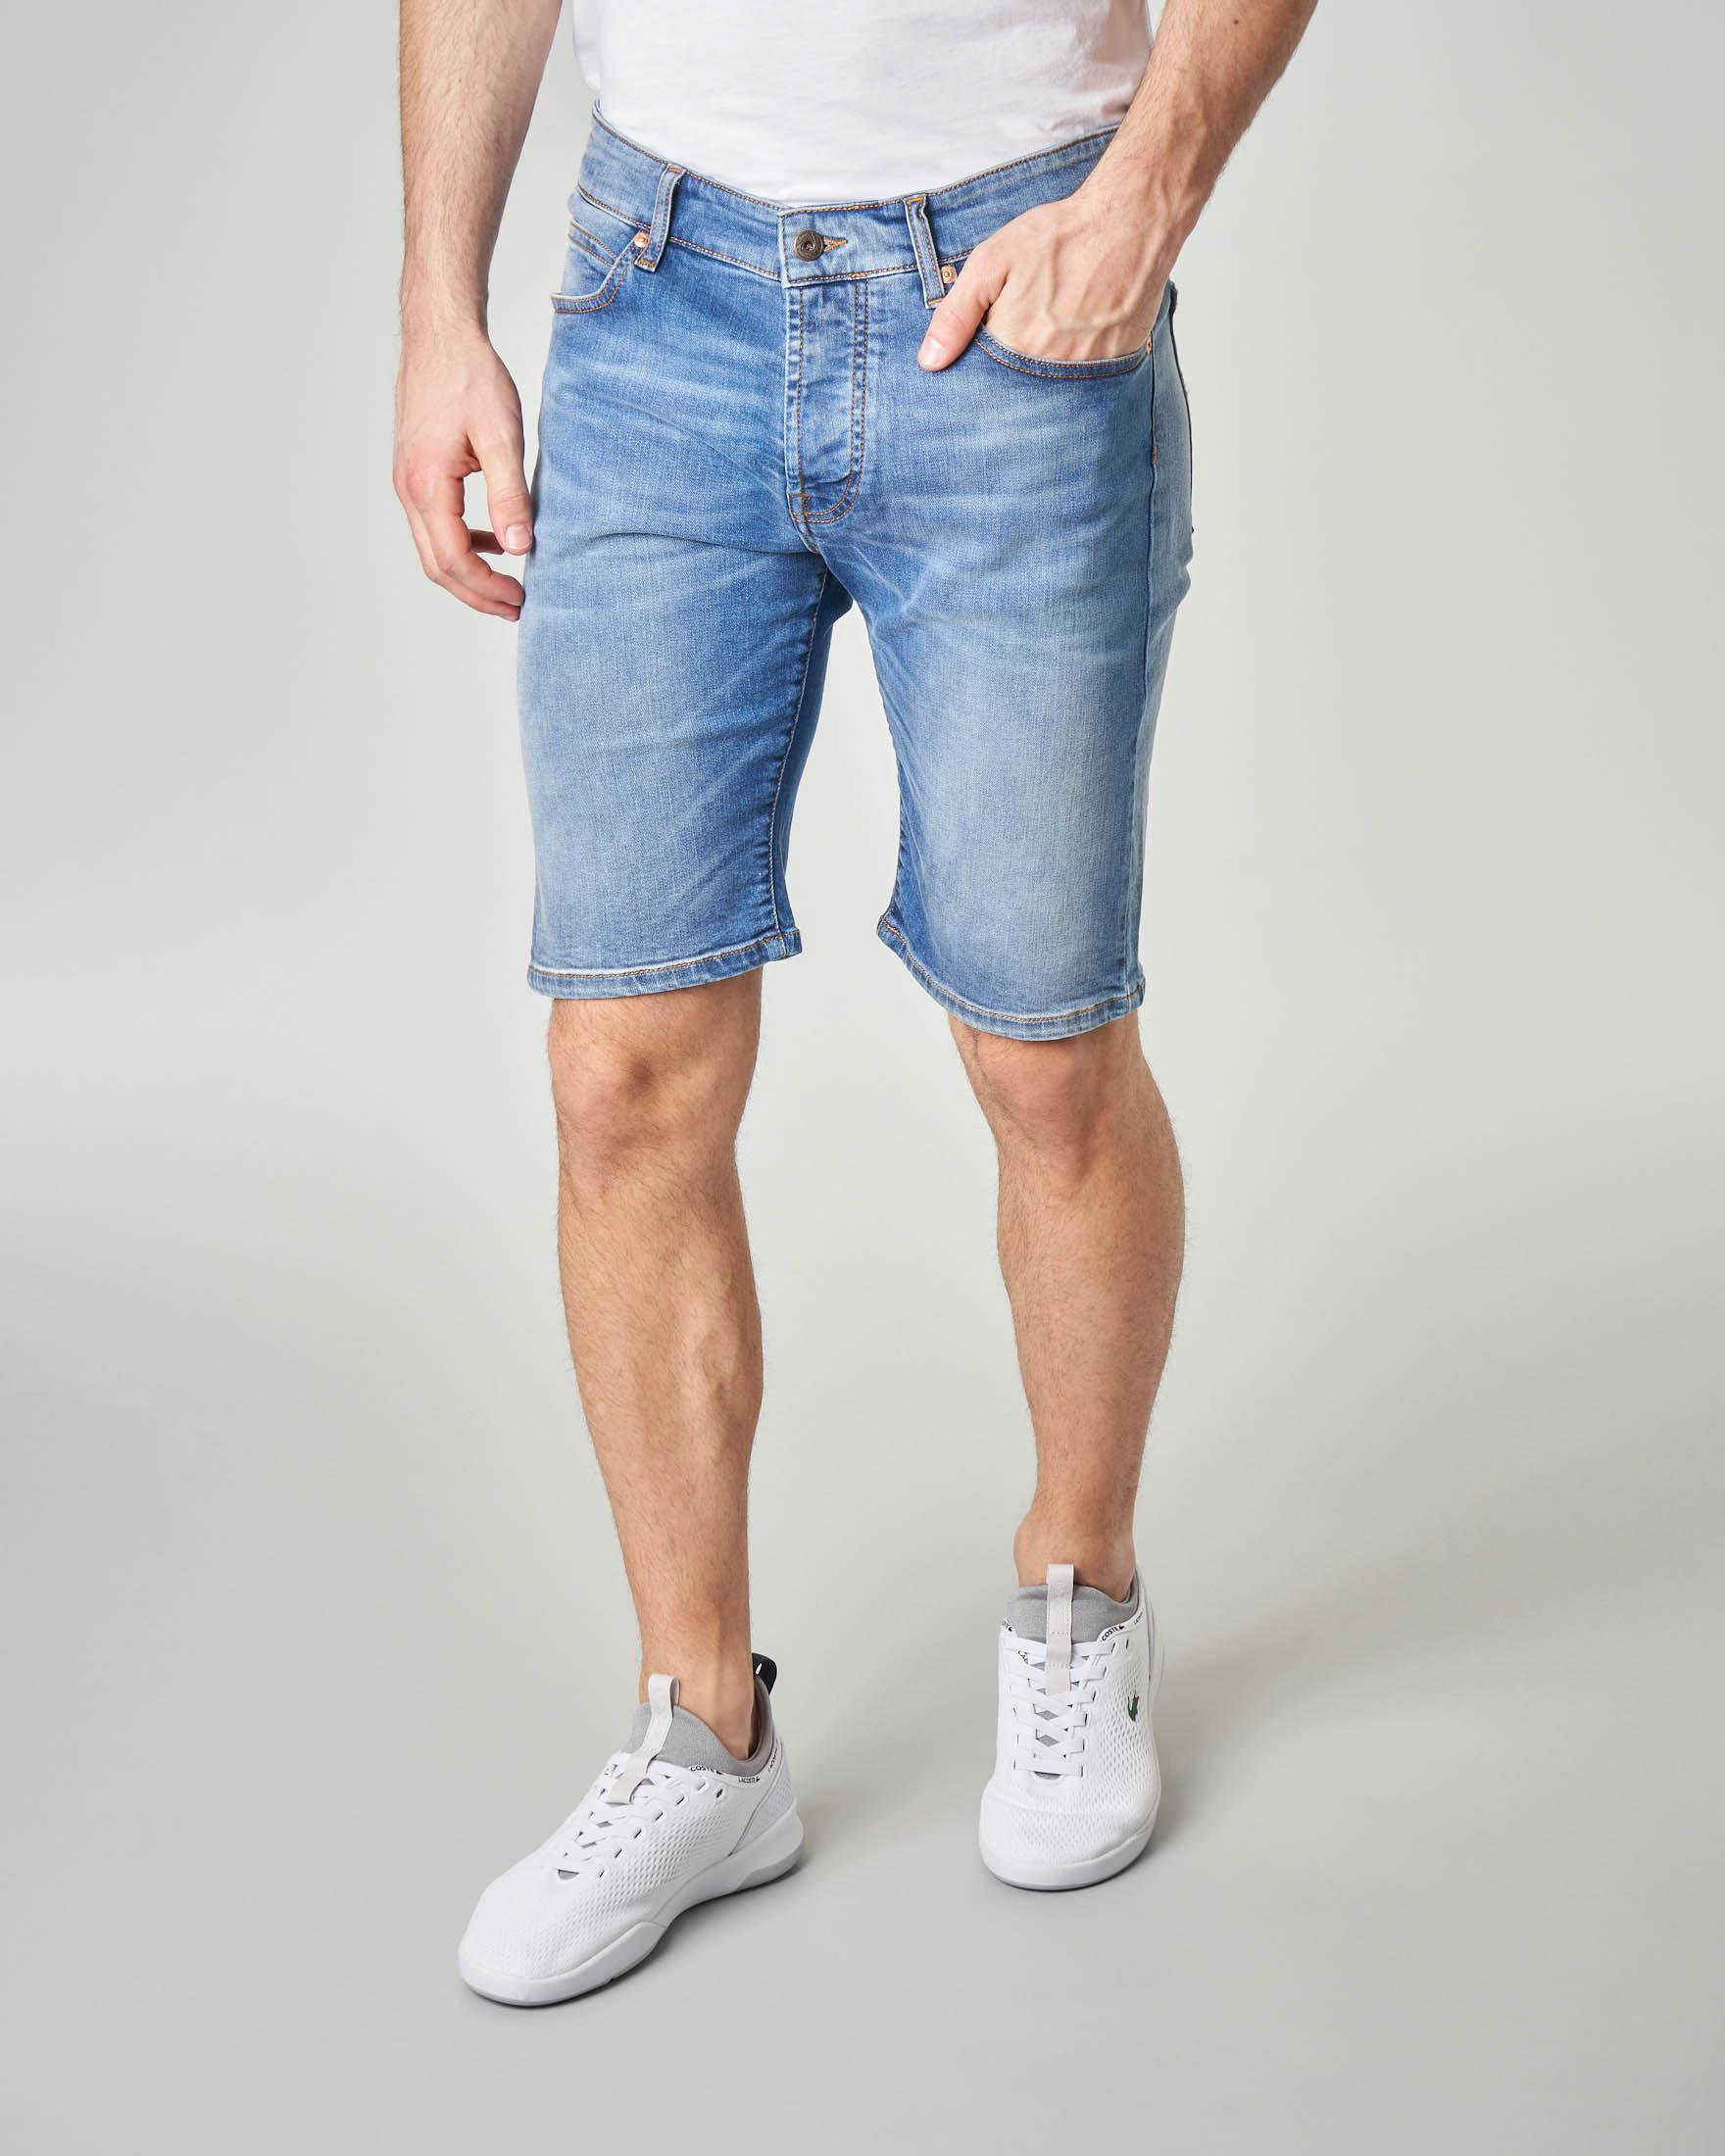 Bermuda in denim lavaggio super stone wash